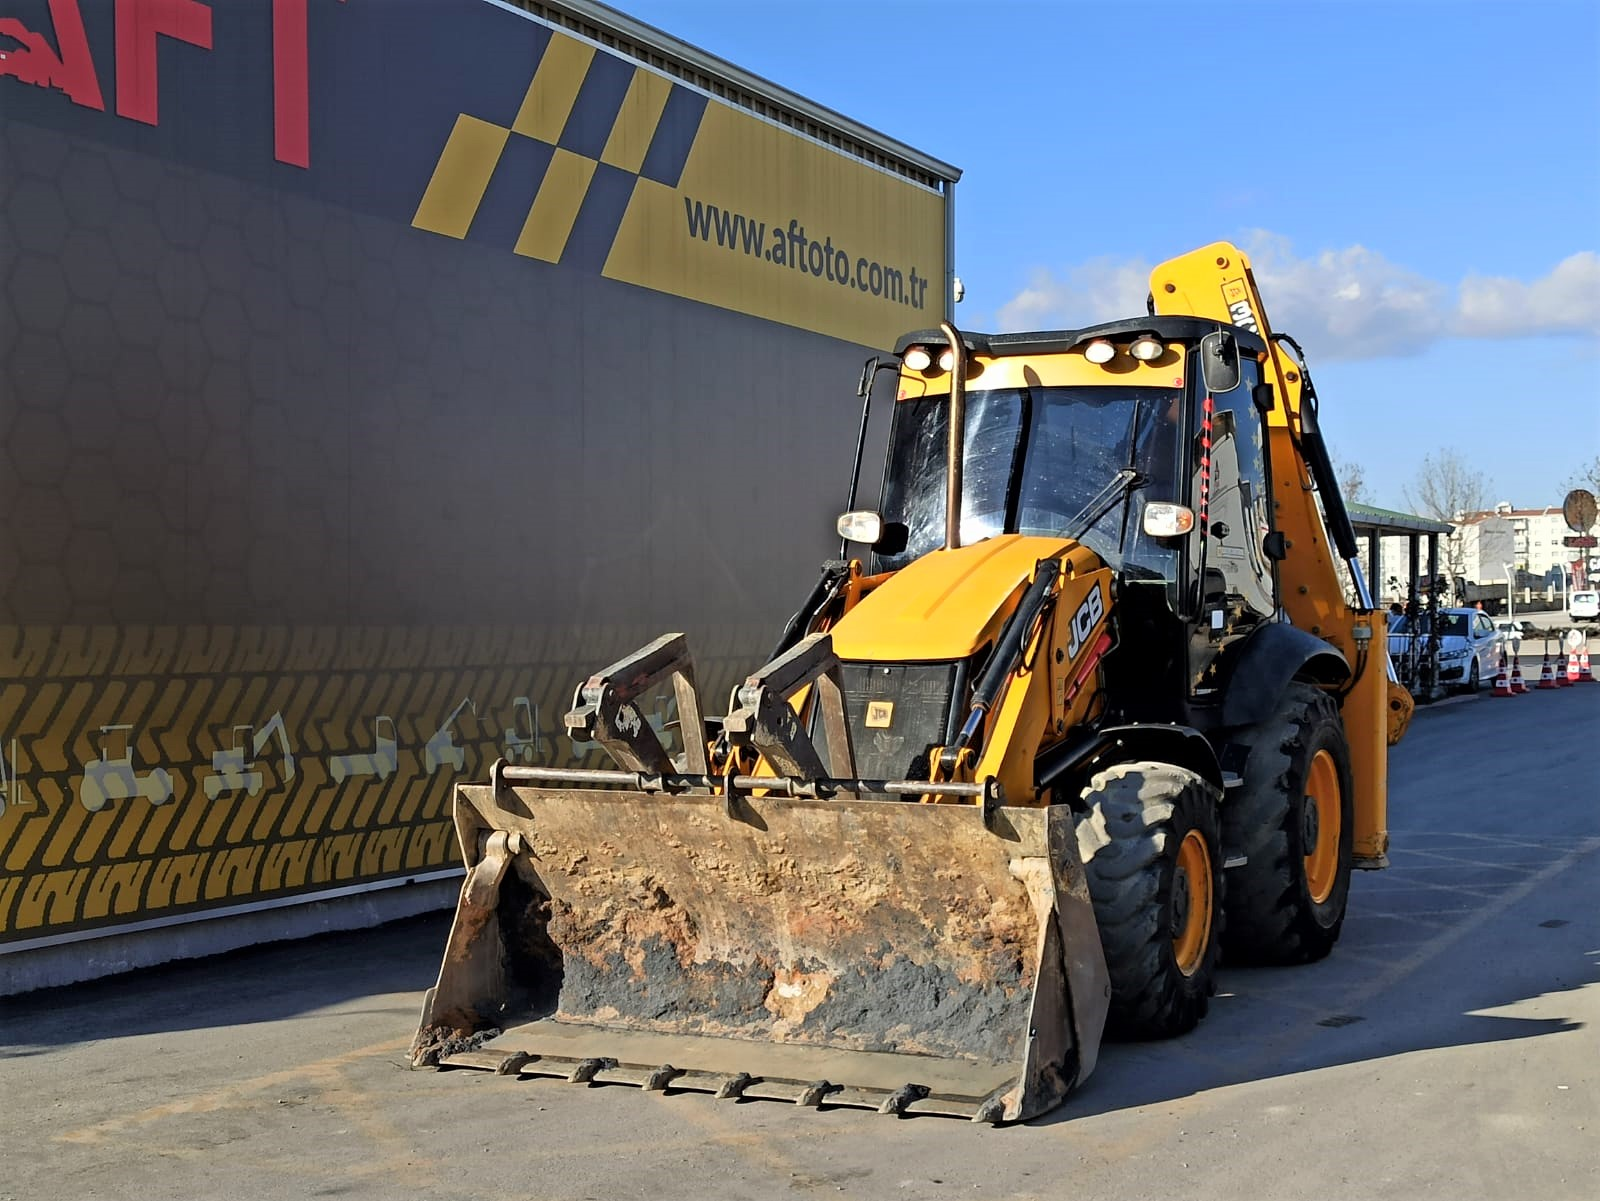 2015 MODEL JCB 3CX EXTENSIBLE BOOM BECKHOE LOADER